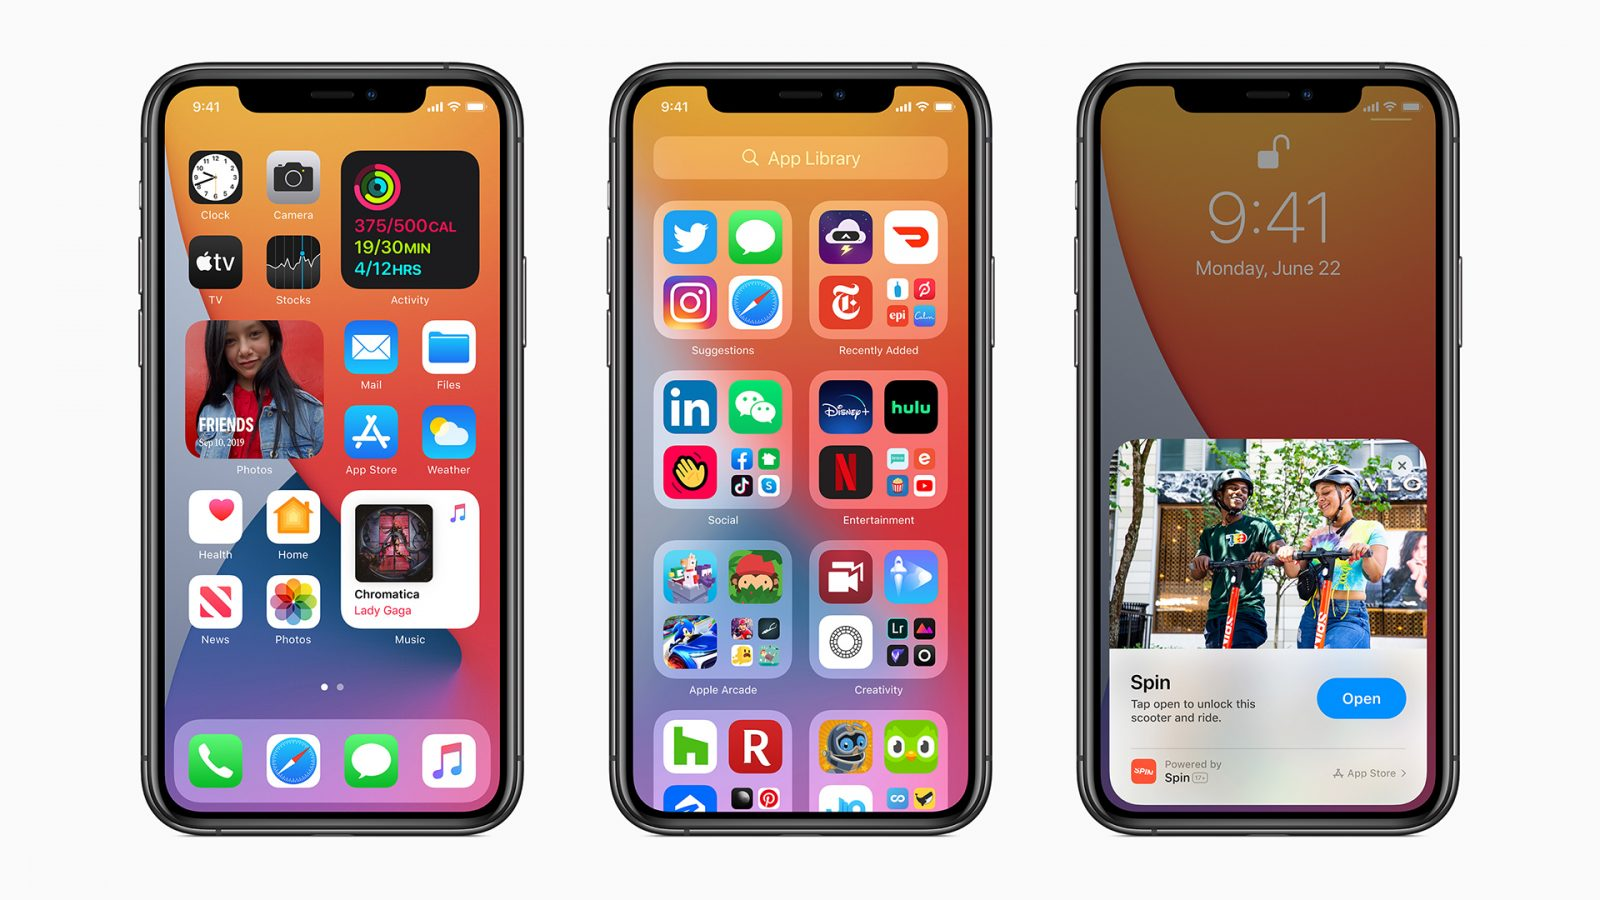 Apple intros iOS 14 with better than Android widgets and more